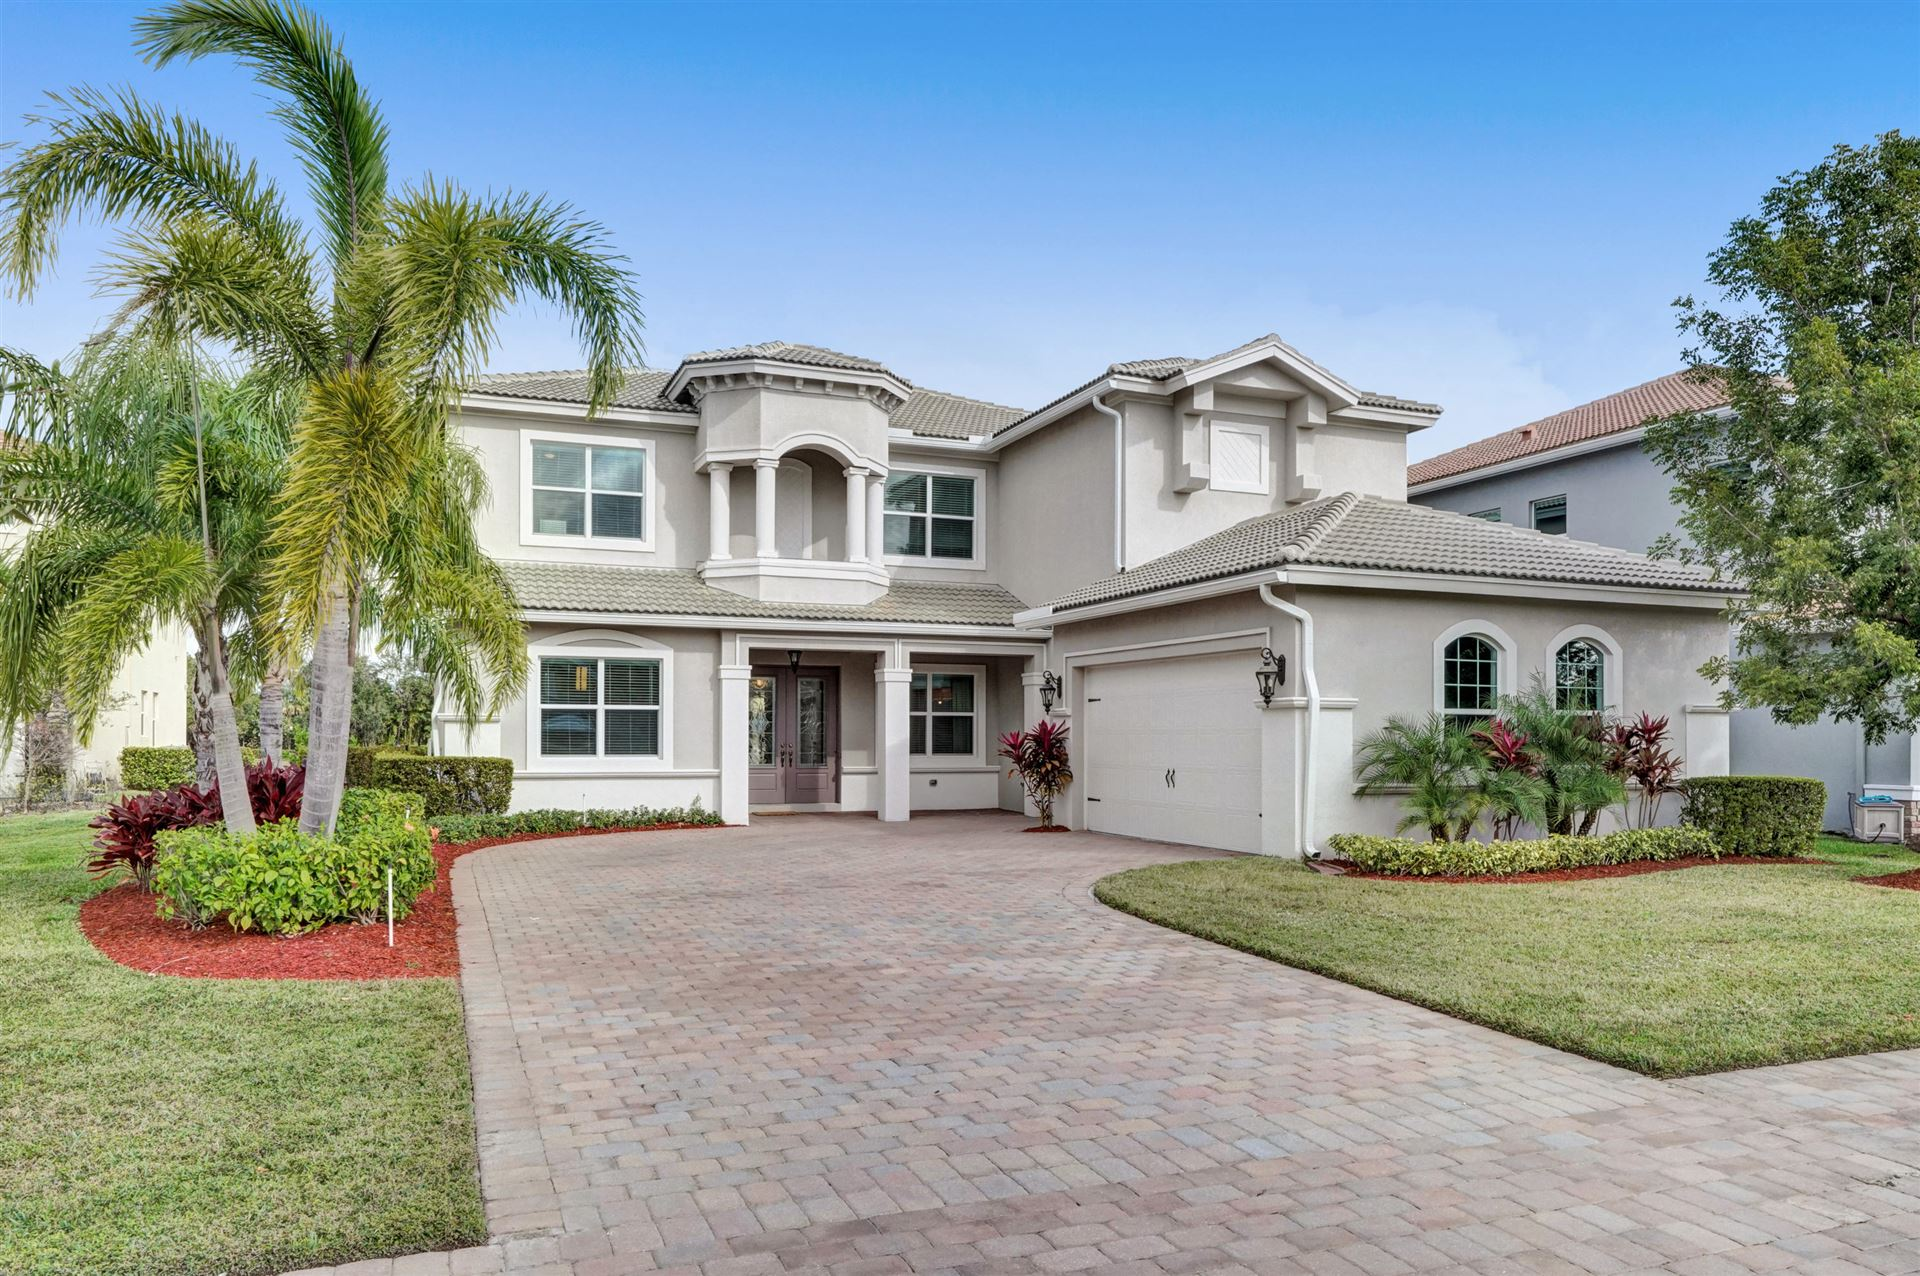 8959 Cypress Grove Lane, West Palm Beach, FL 33411 - #: RX-10683904